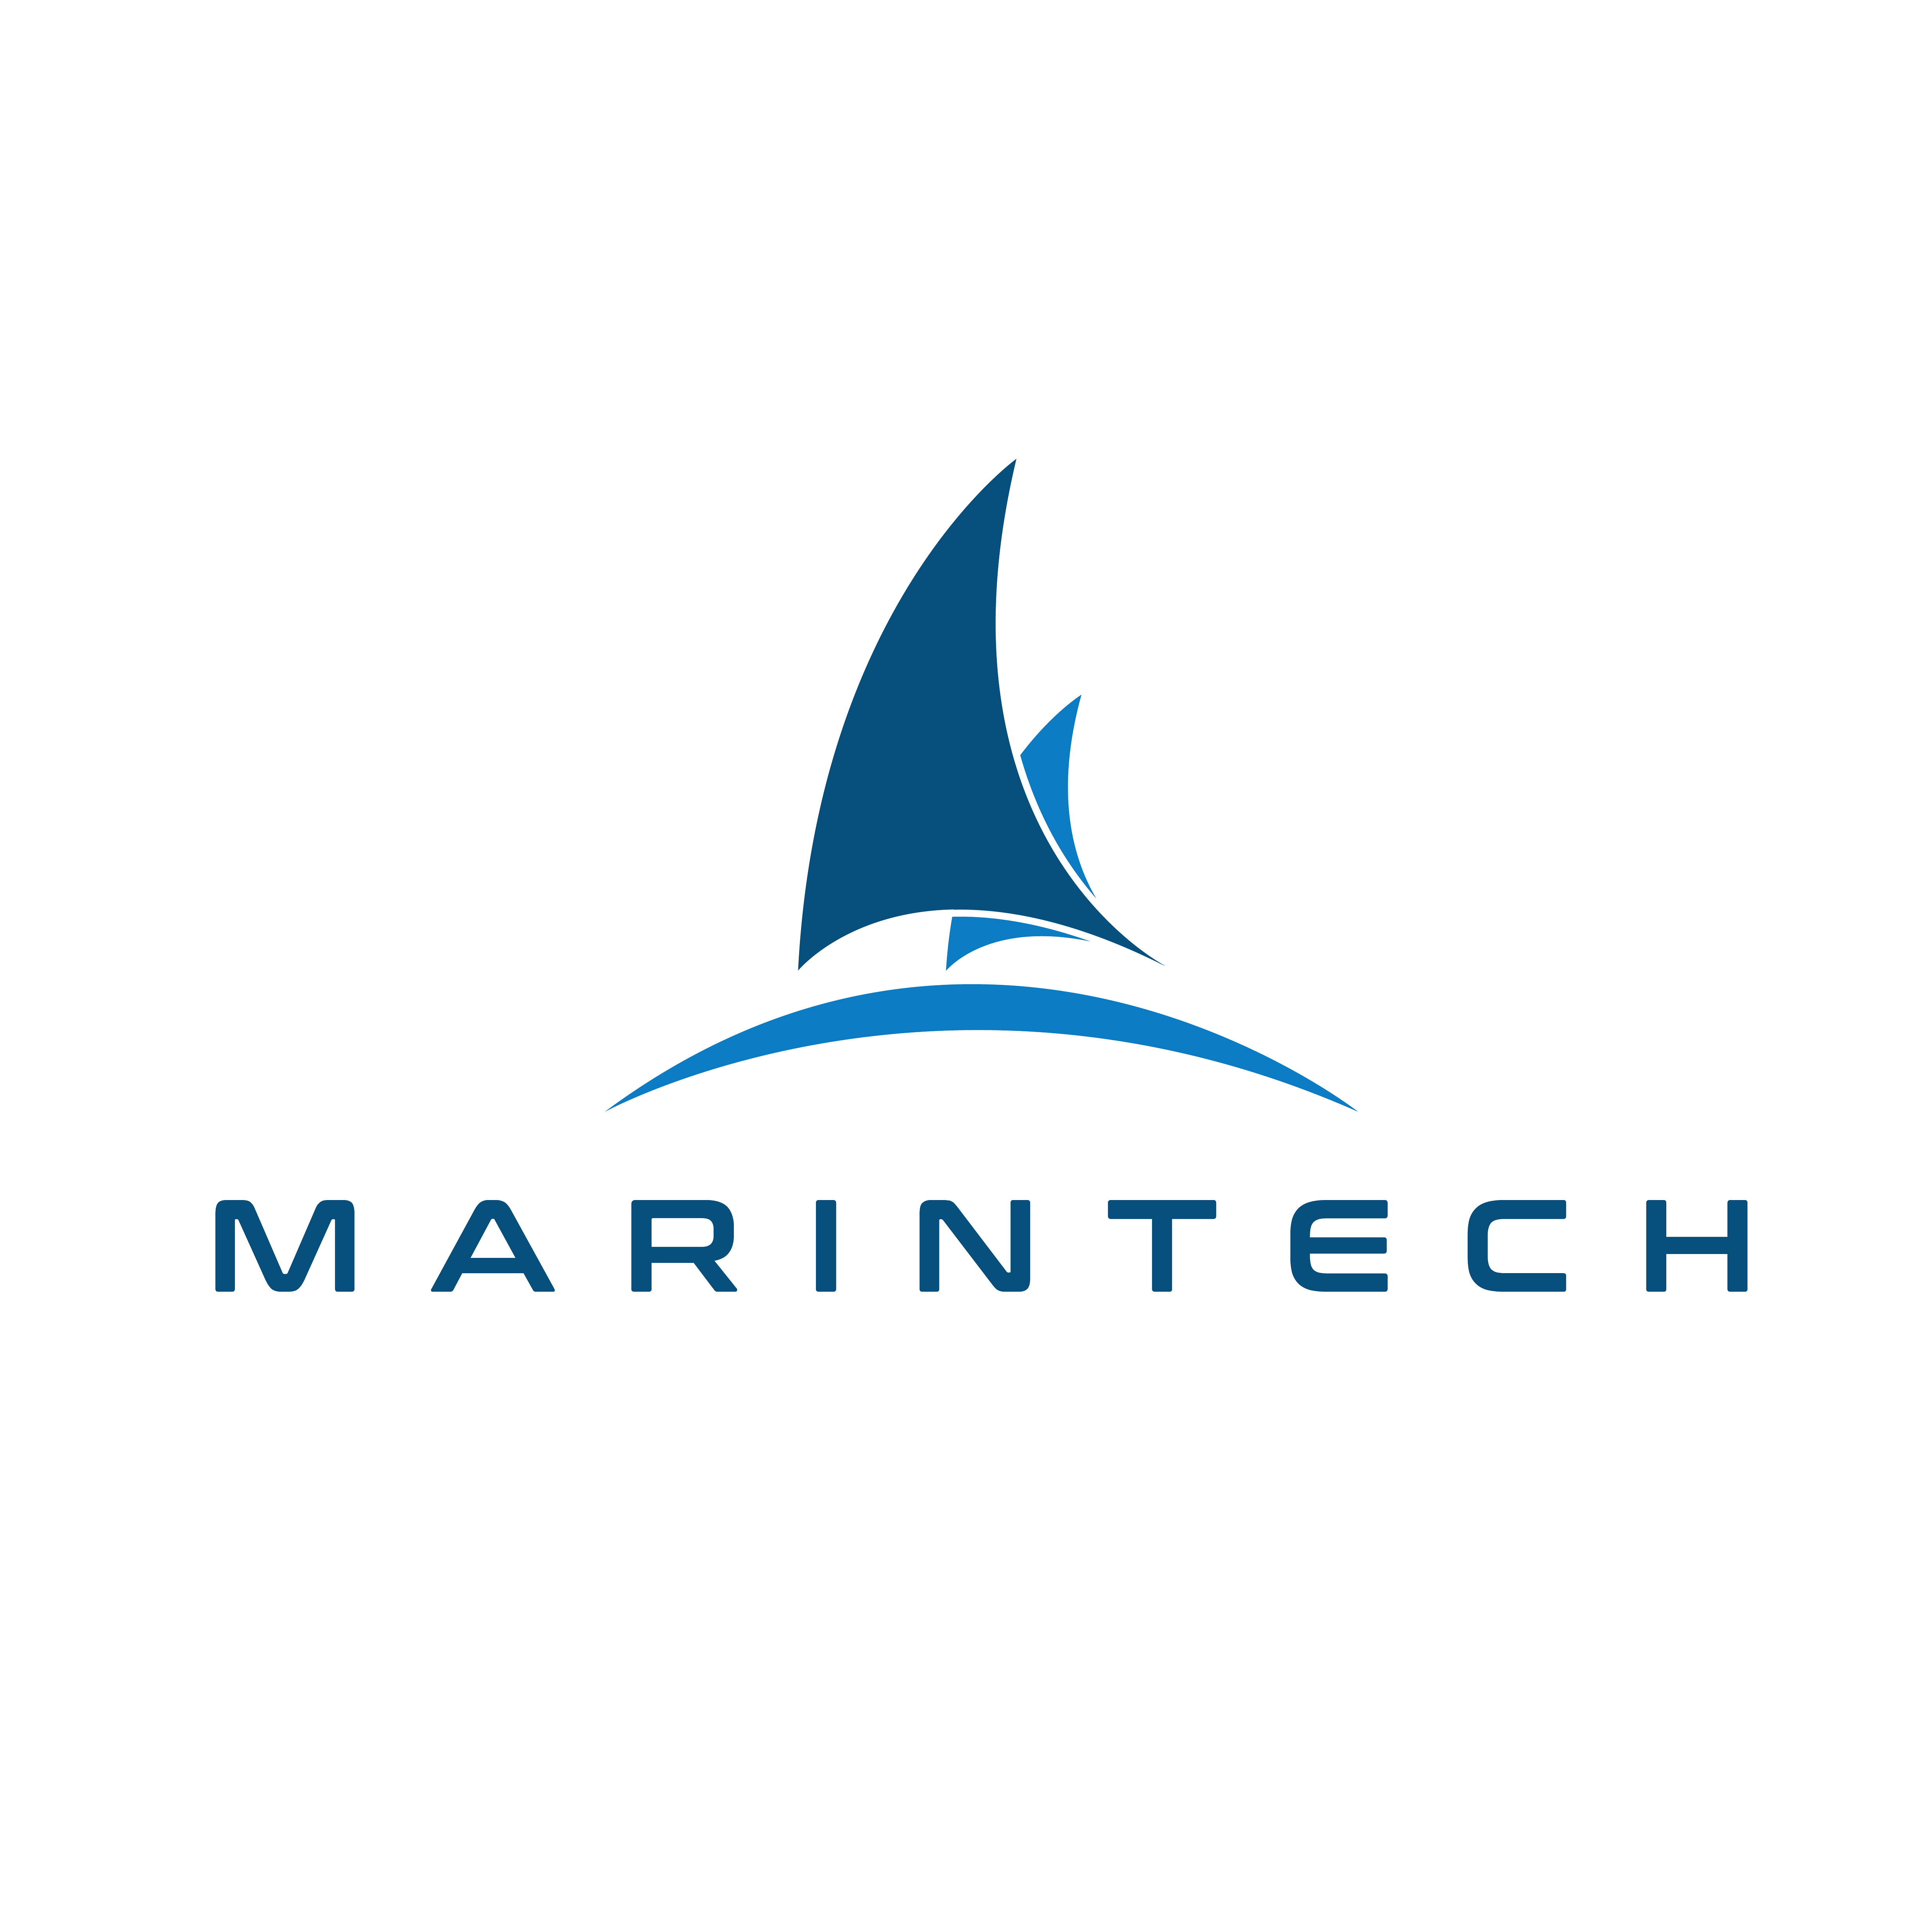 Home | Marintech Marketing | Yachting & Boating Equipement Specalist